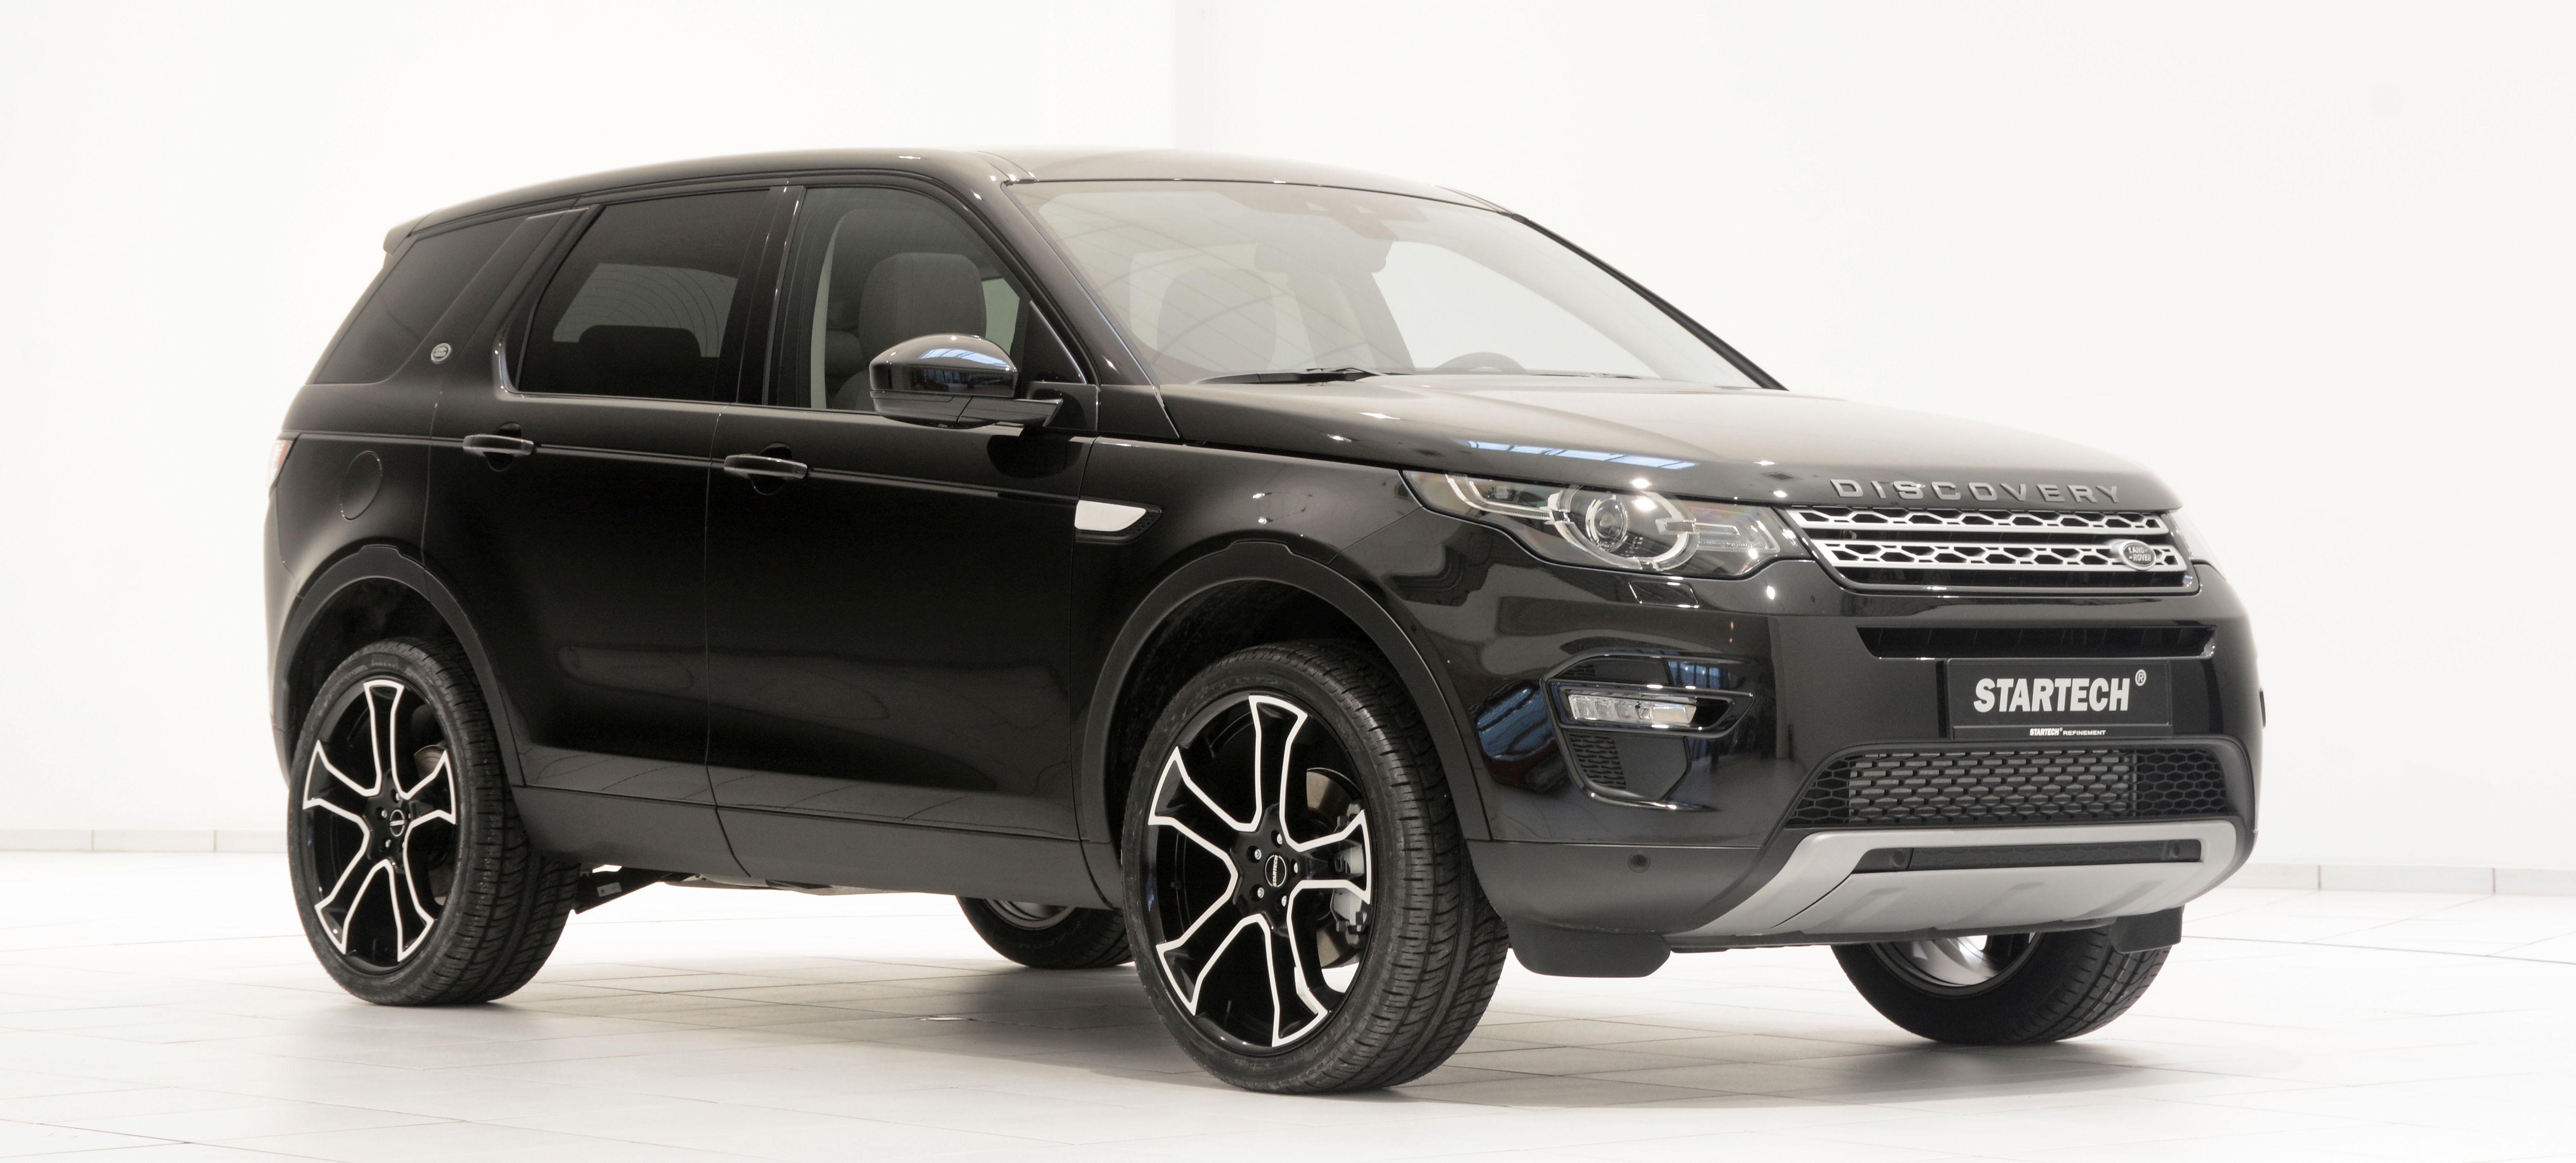 22 Quot Wheels For The New Discovery Sport Startech Refinement